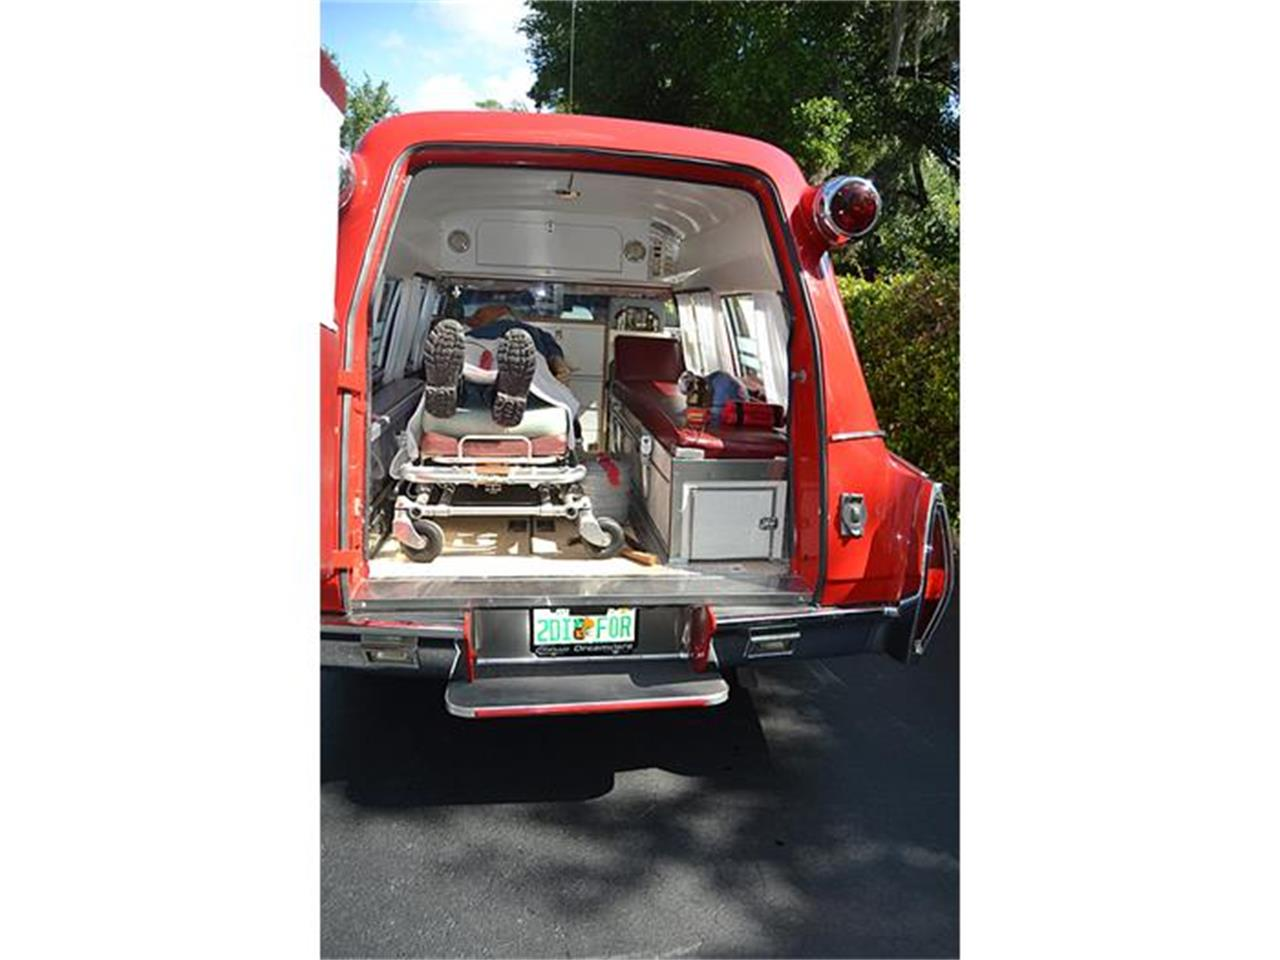 Large Picture of '72 Cadillac S&S Kesington Professional Ambulance - $47,500.00 Offered by Classic Dreamcars, Inc. - IWNH